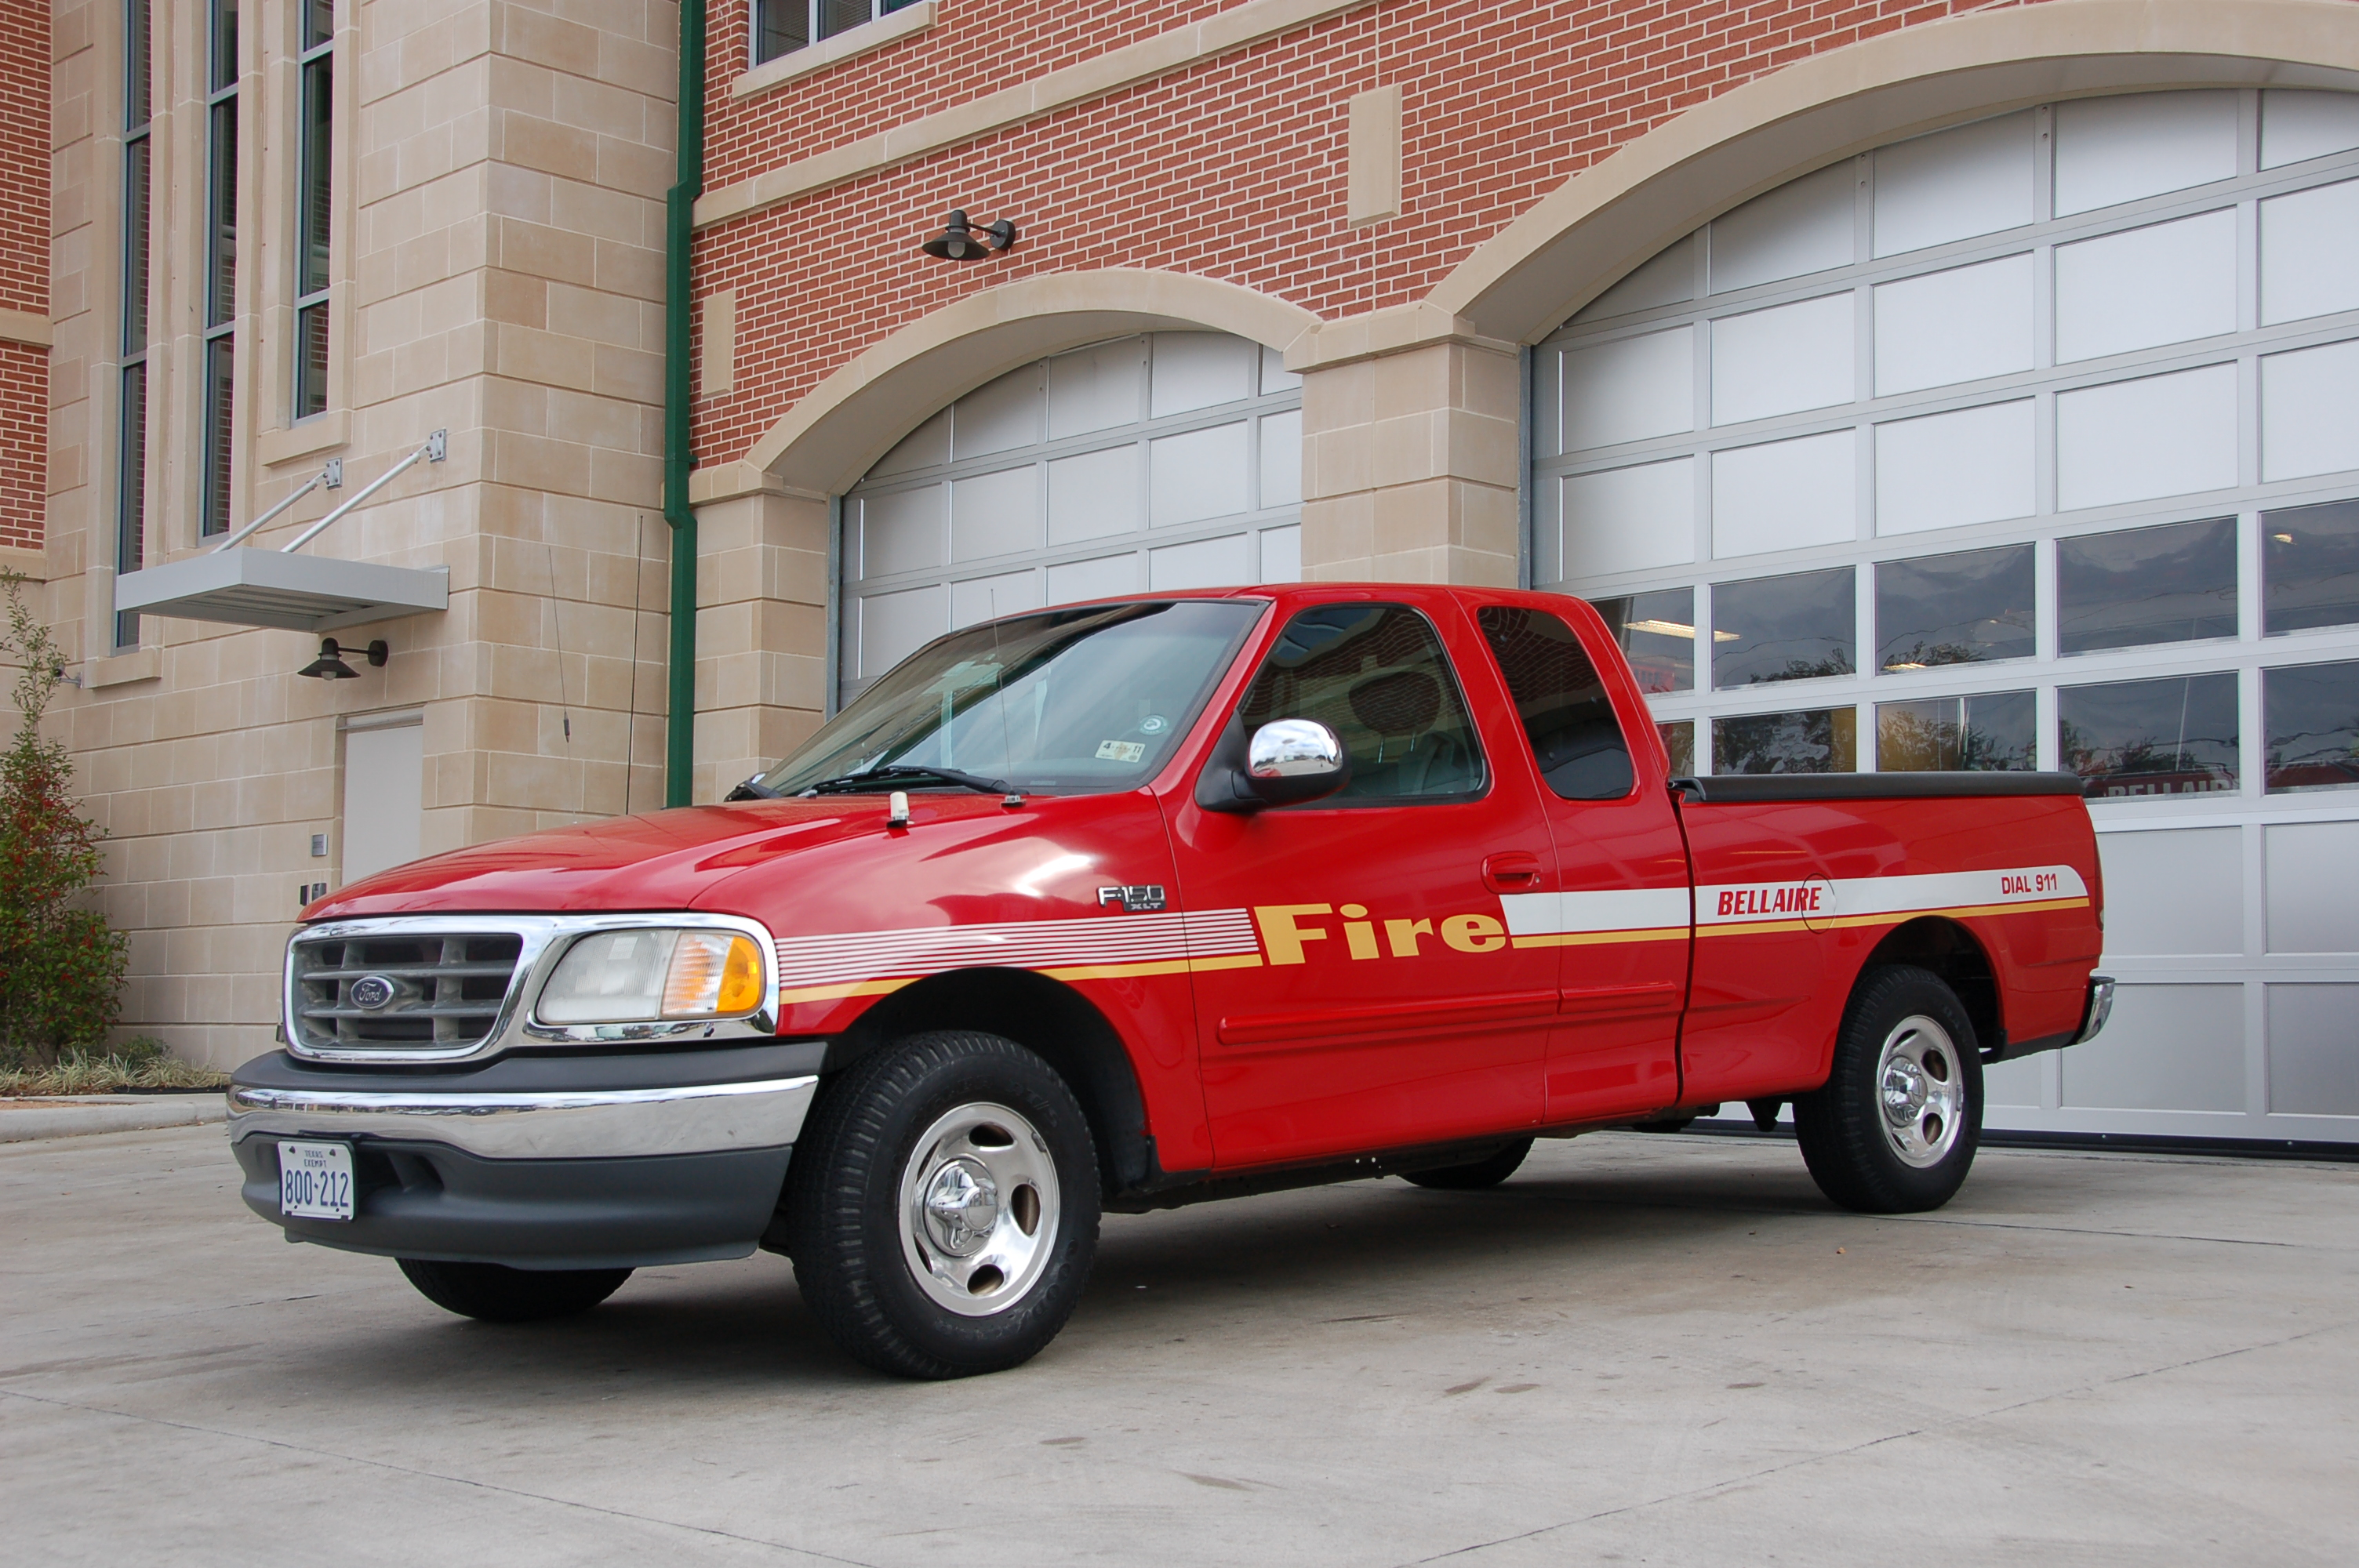 Fire Department Pickup Truck